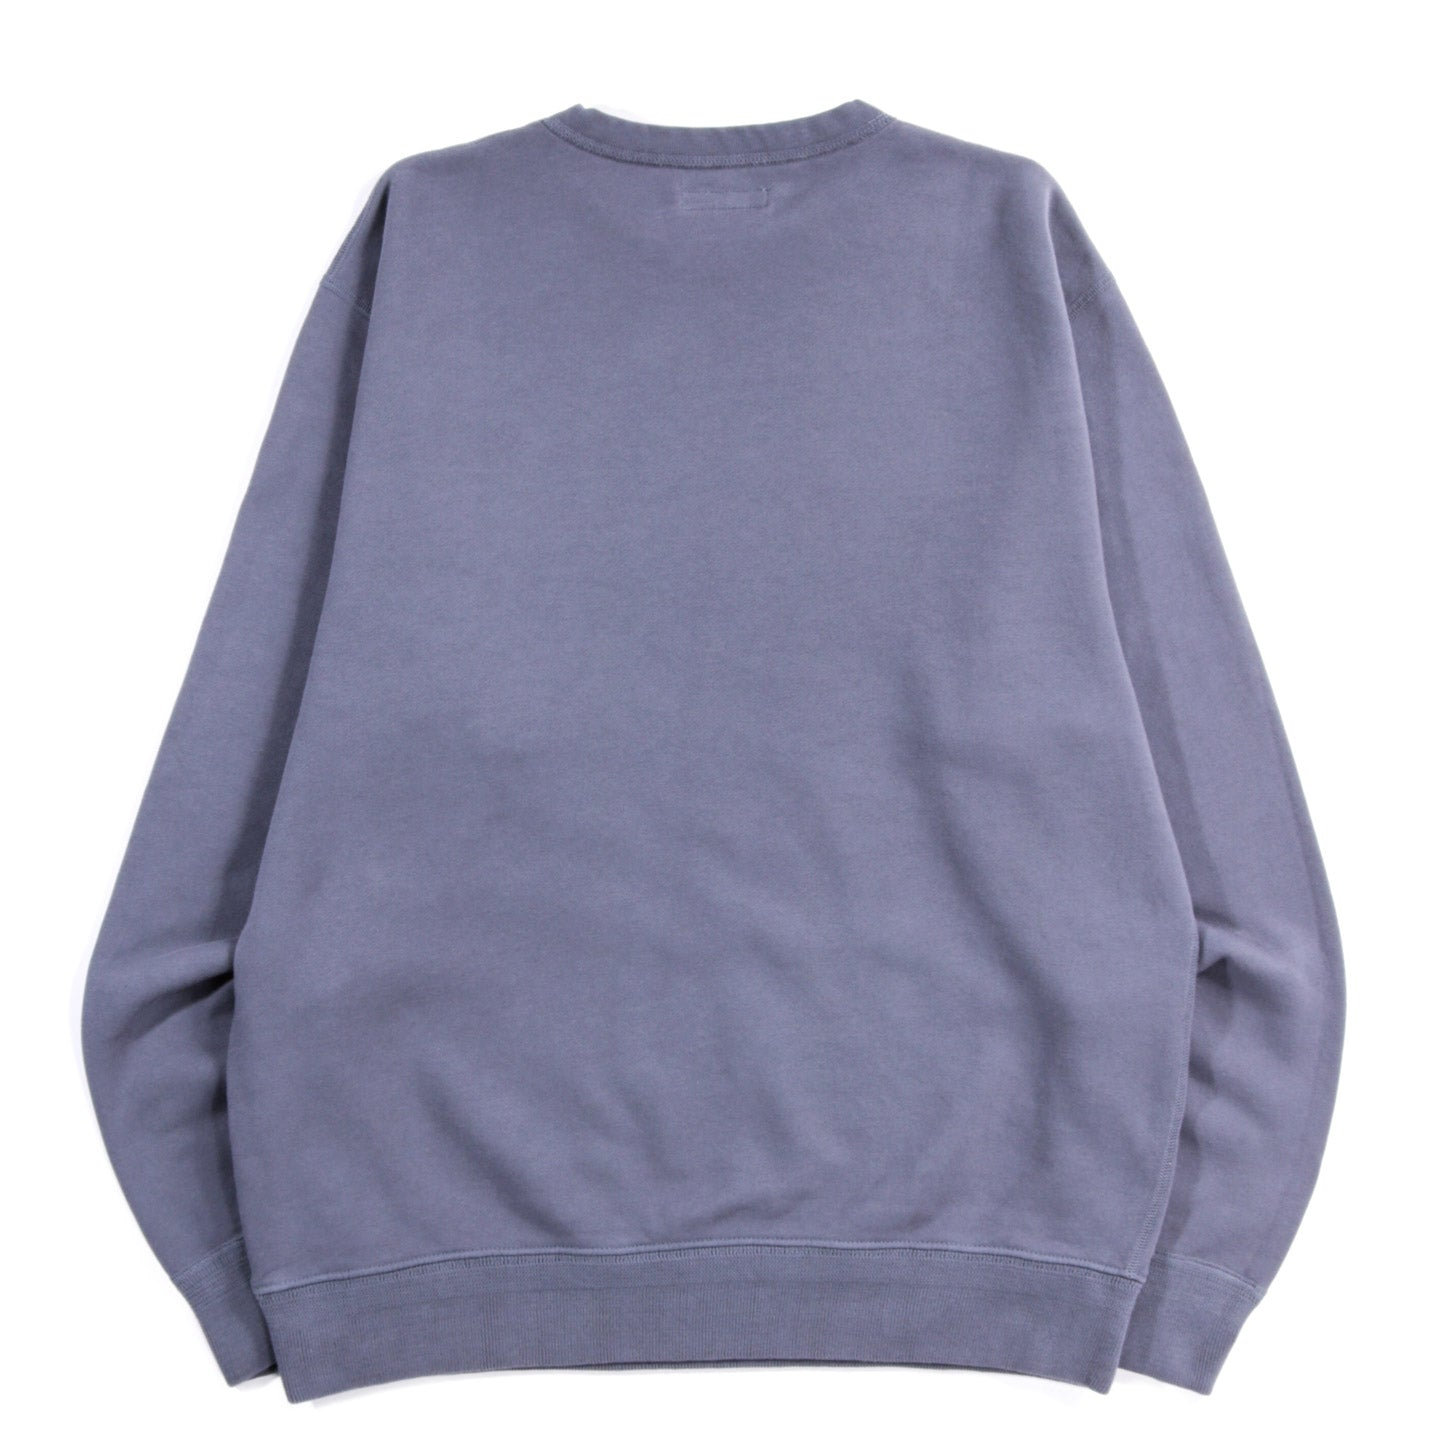 LADY WHITE CO. 44 FLEECE NIGHT GREY